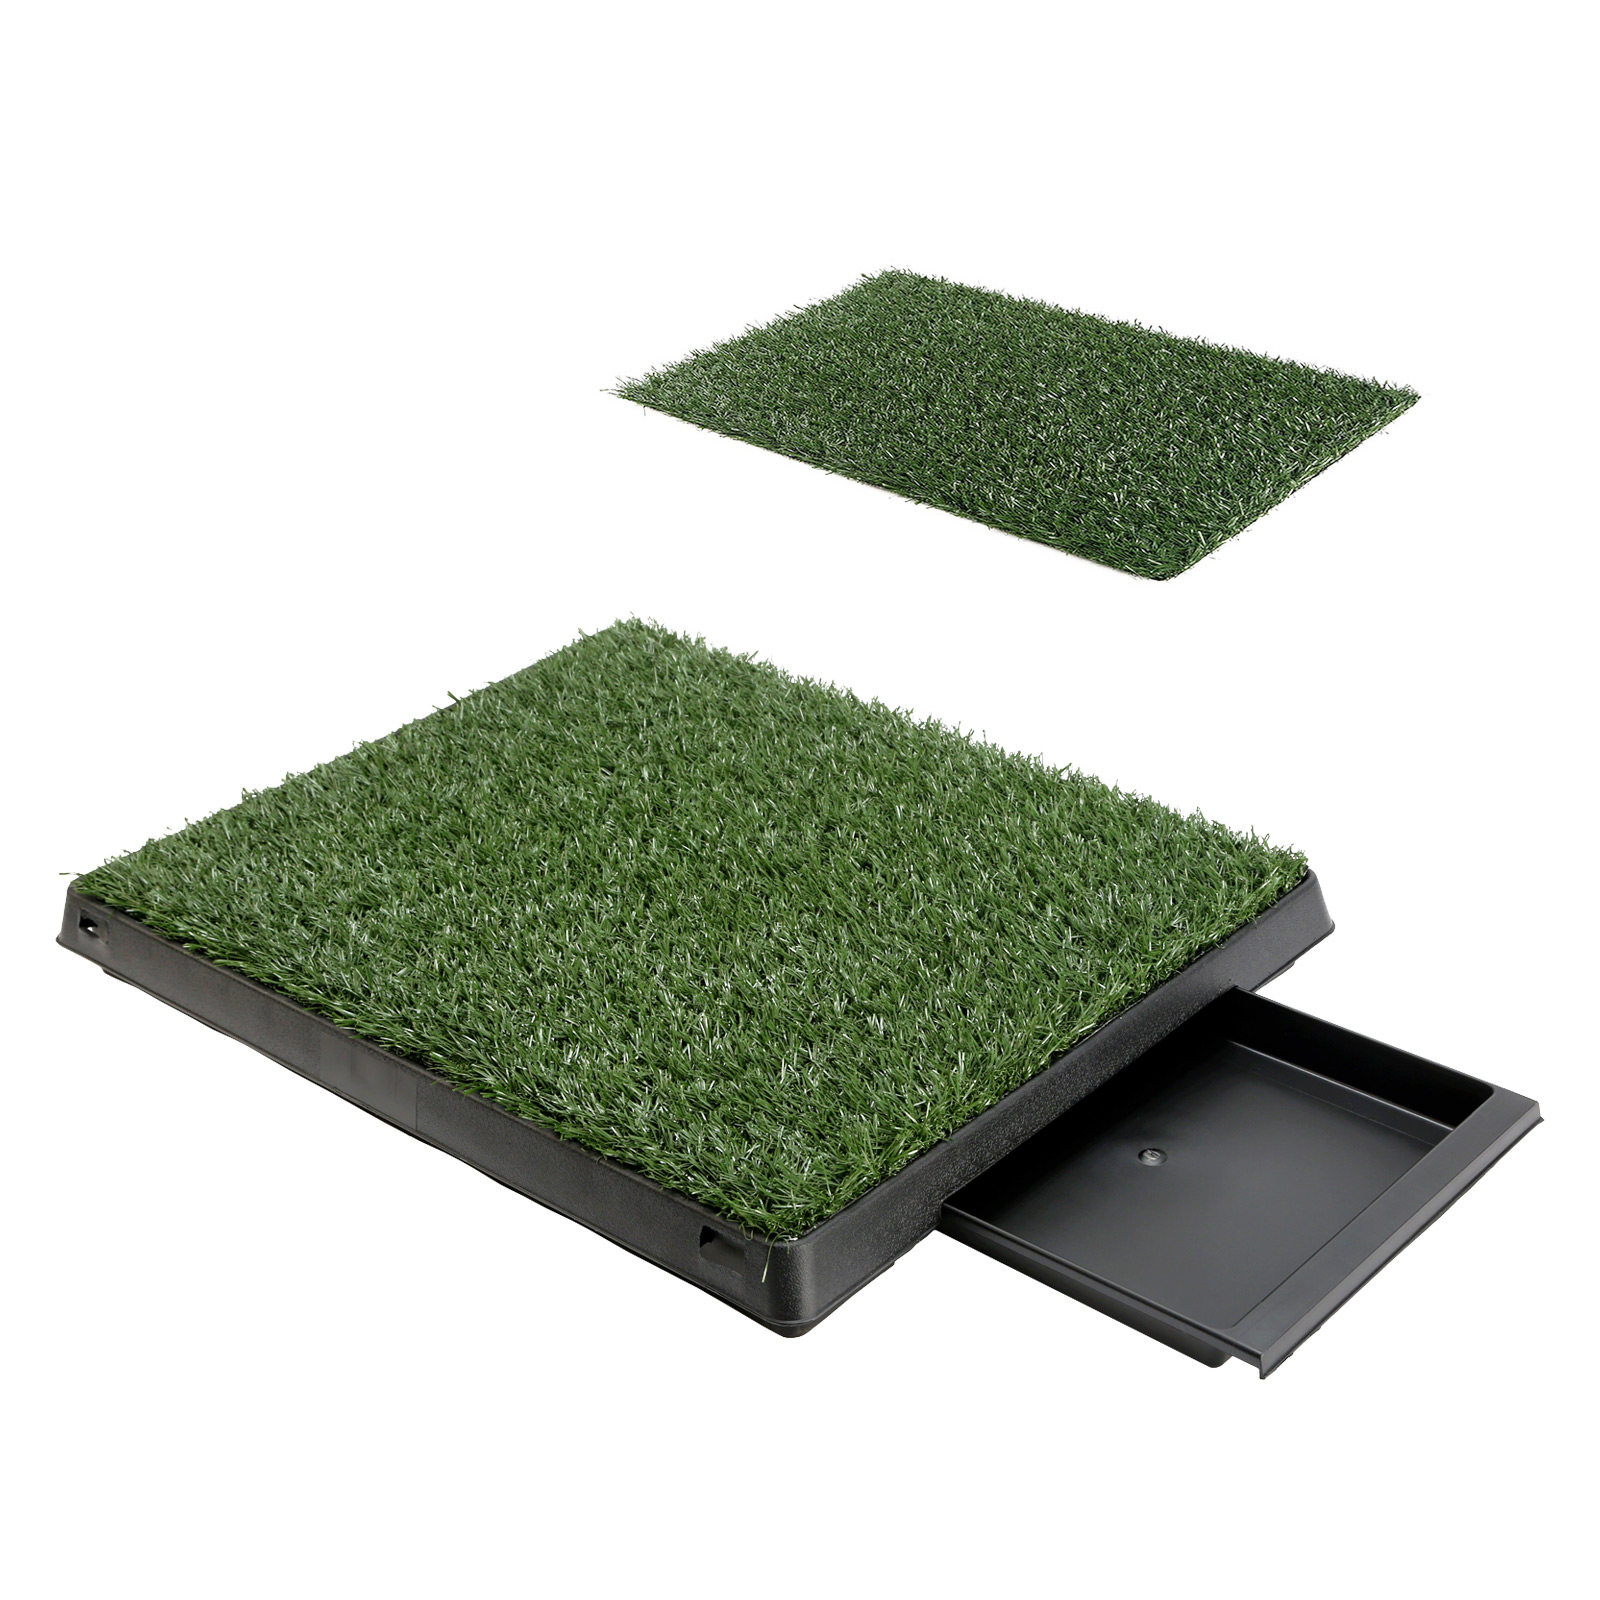 Pet Potty Training Pad Tray L 63 x 50cm - 2 Grass Mat